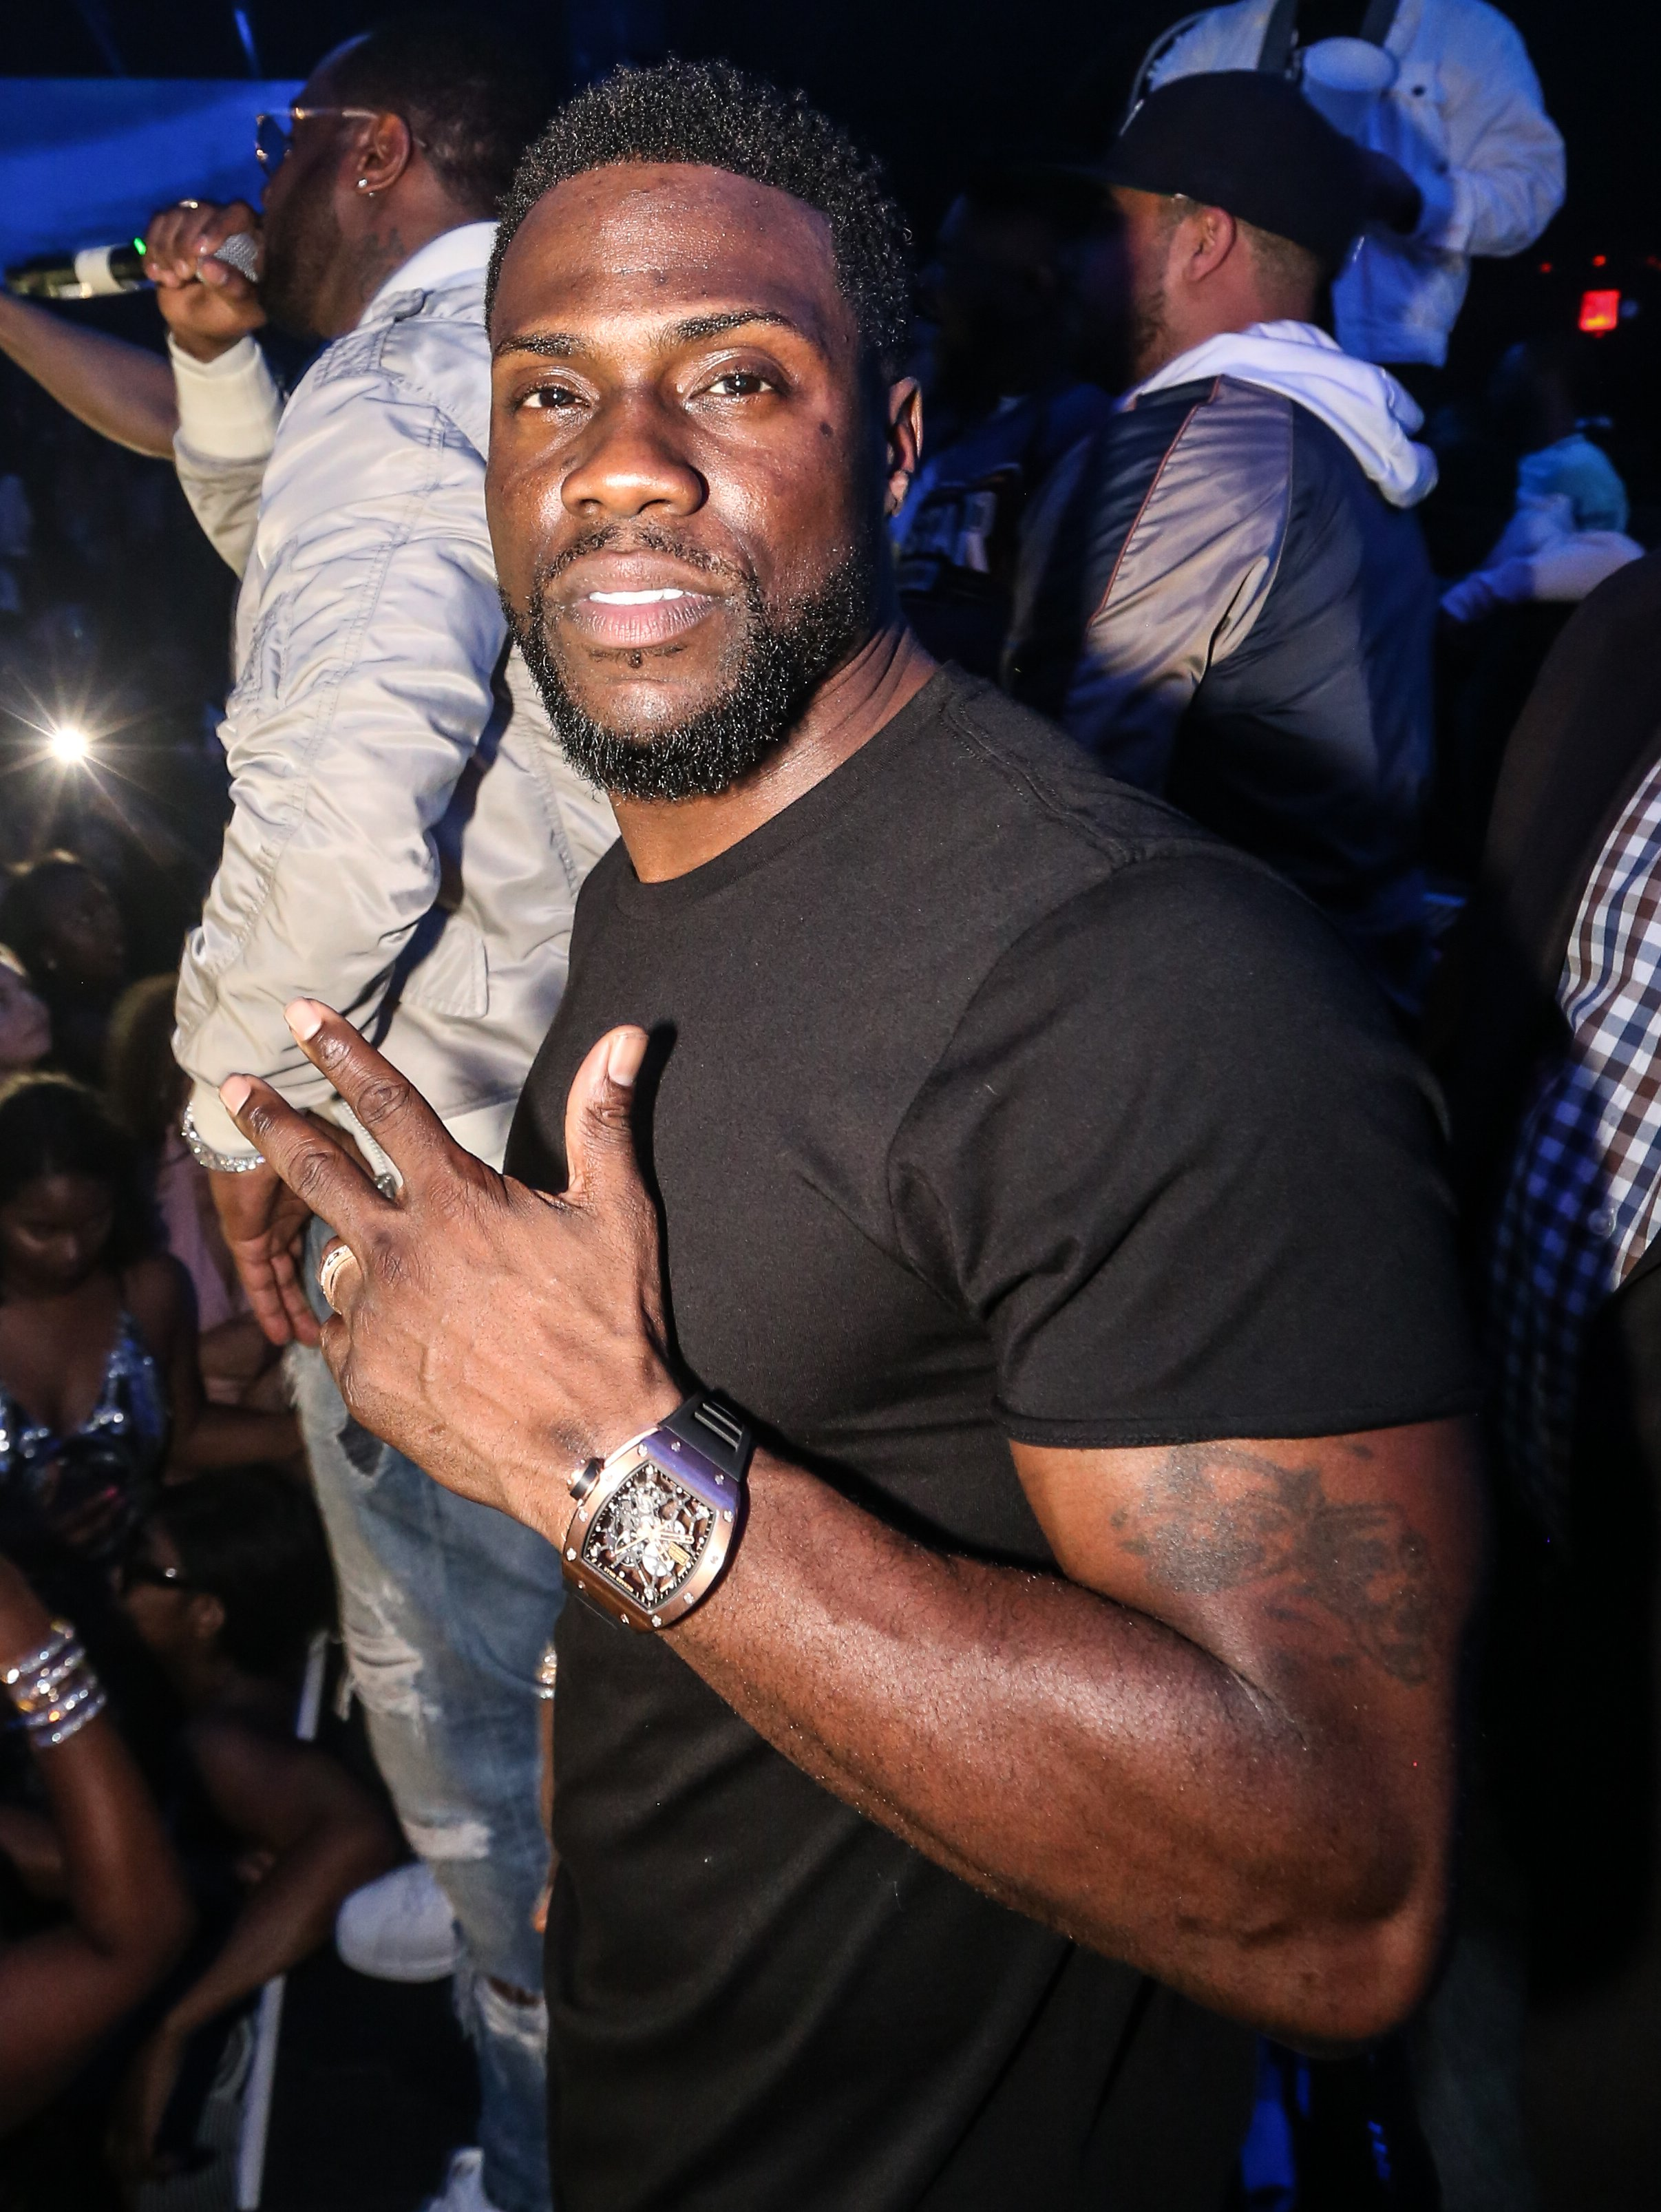 Kevin Hart attends the NBA All-Star Finale party on Feb. 18, 2018 in Los Angeles, California | Photo: Getty Images